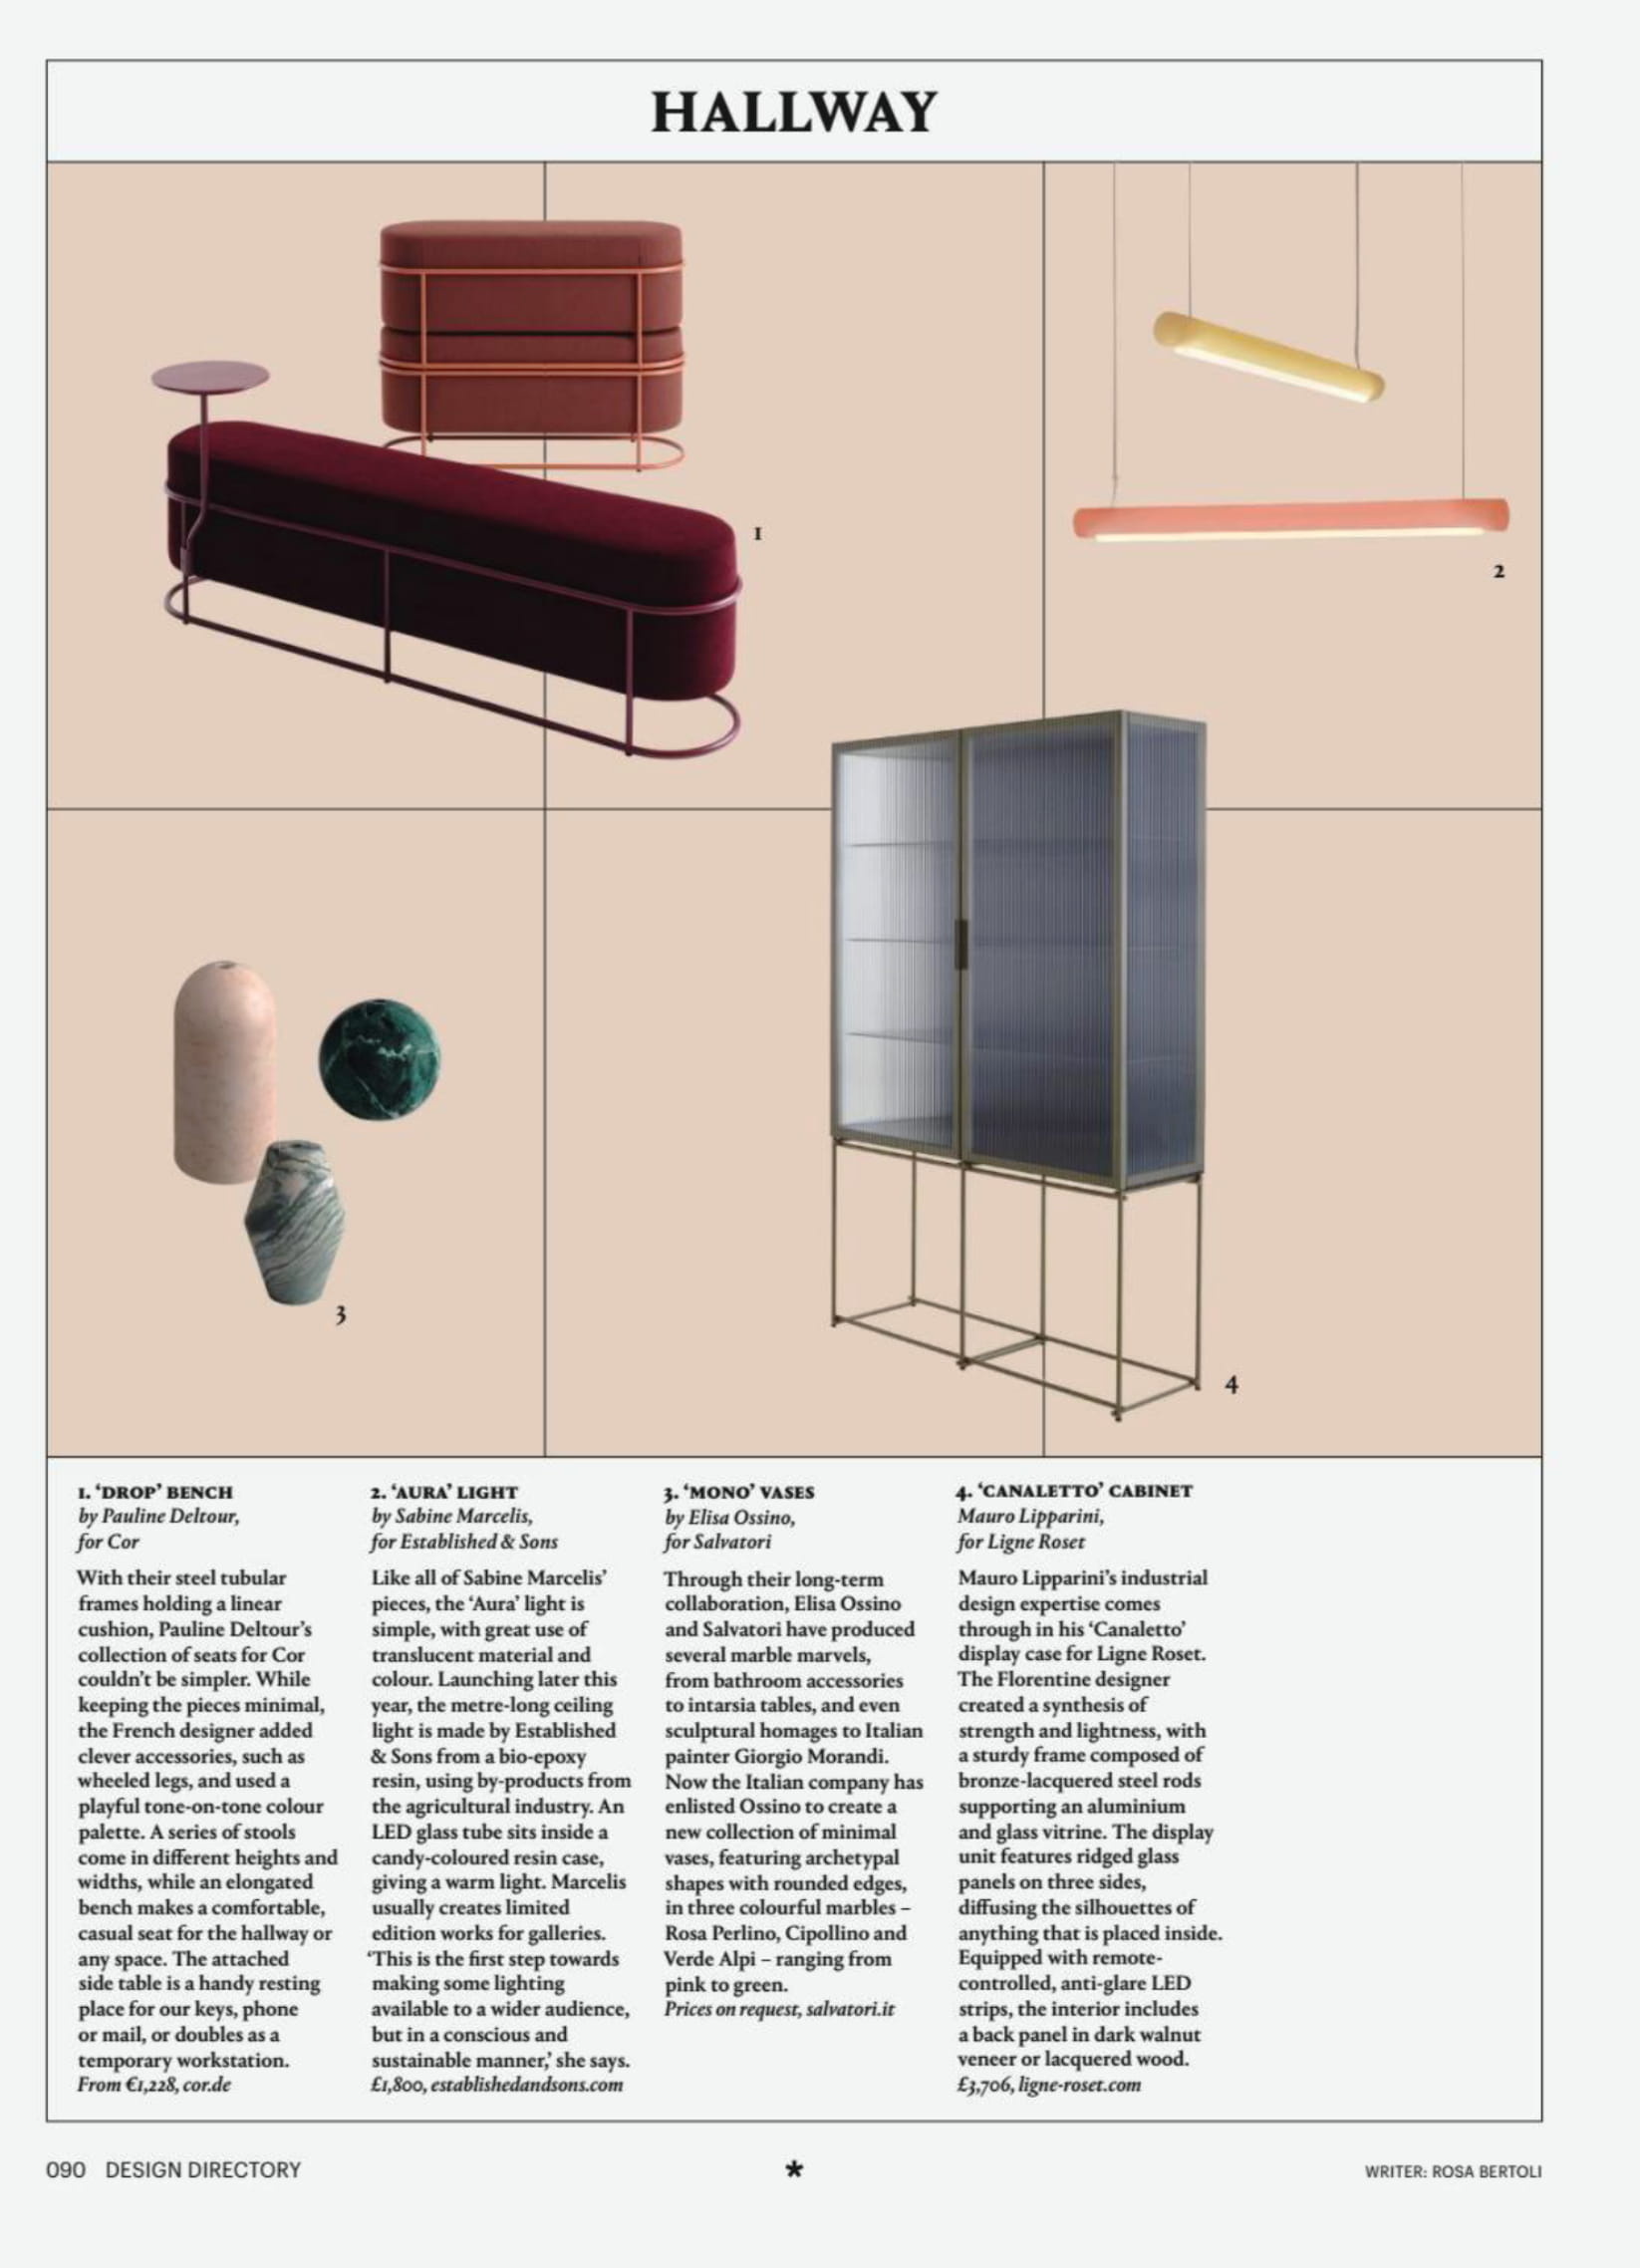 Ligne Roset's Canaletto cabinet on display in Wallpaper, June